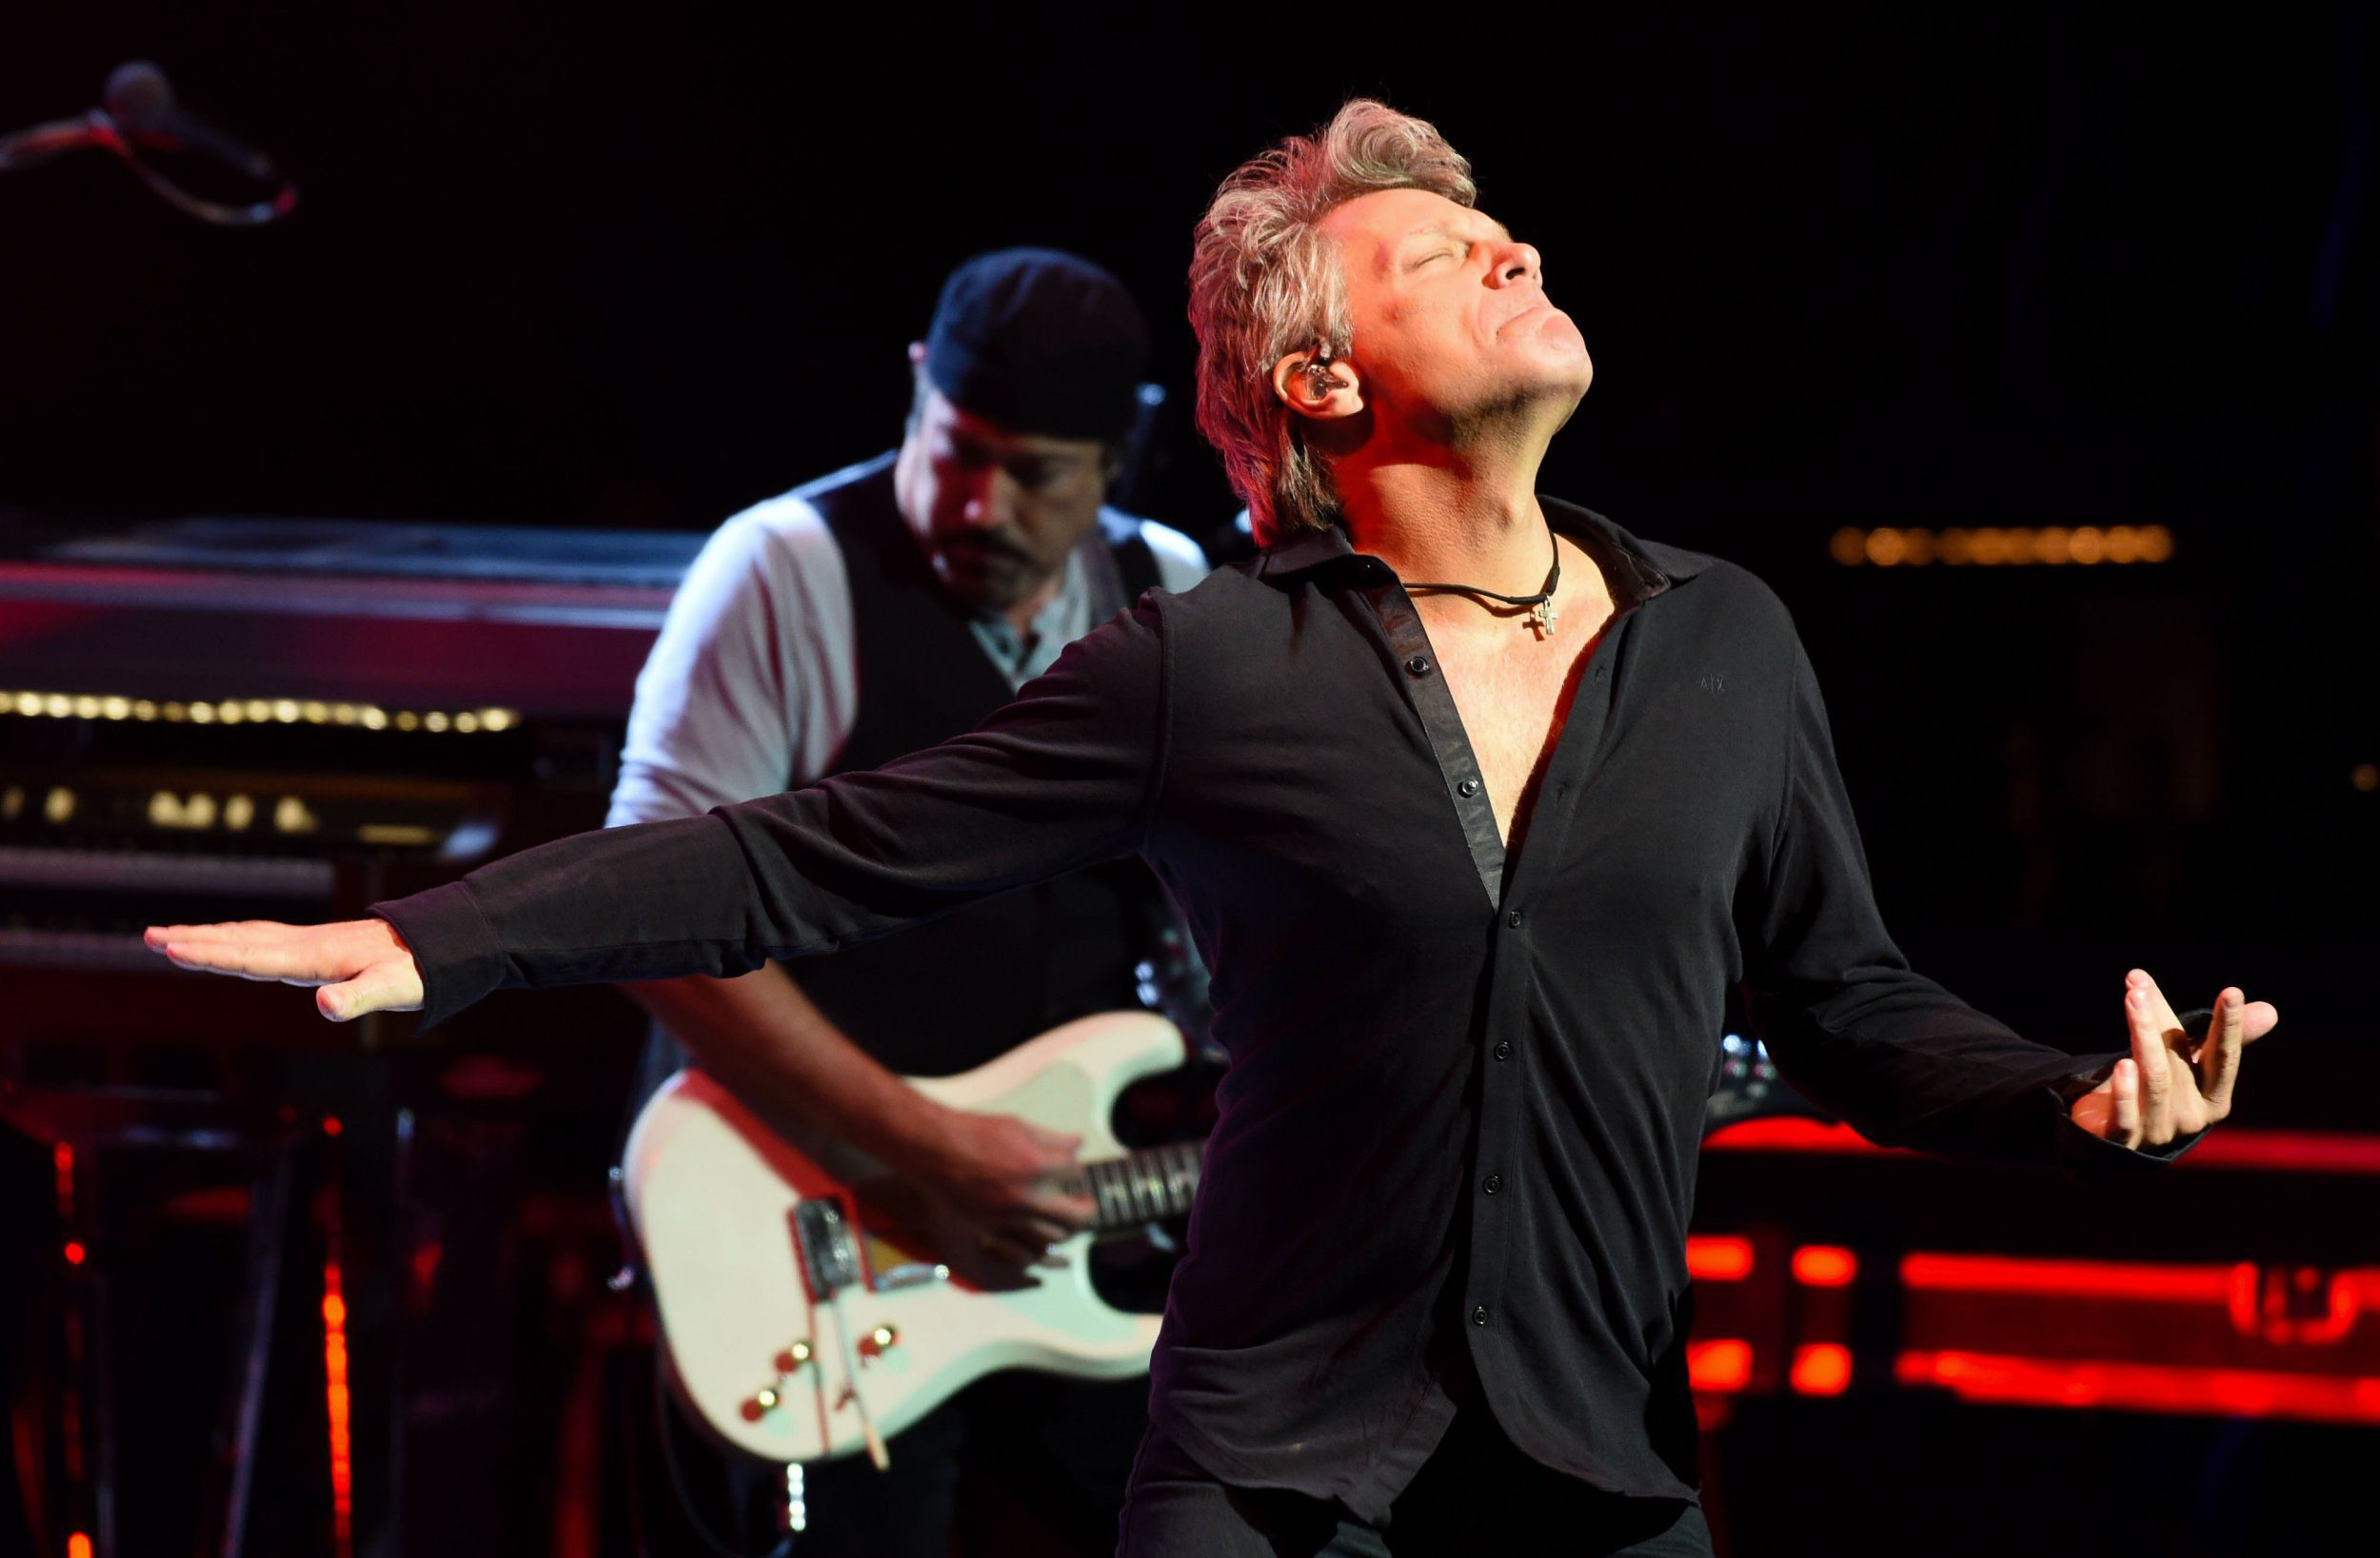 Bon Jovi return gloriously with most honest album yet, played in front of a 2,000 strong audience